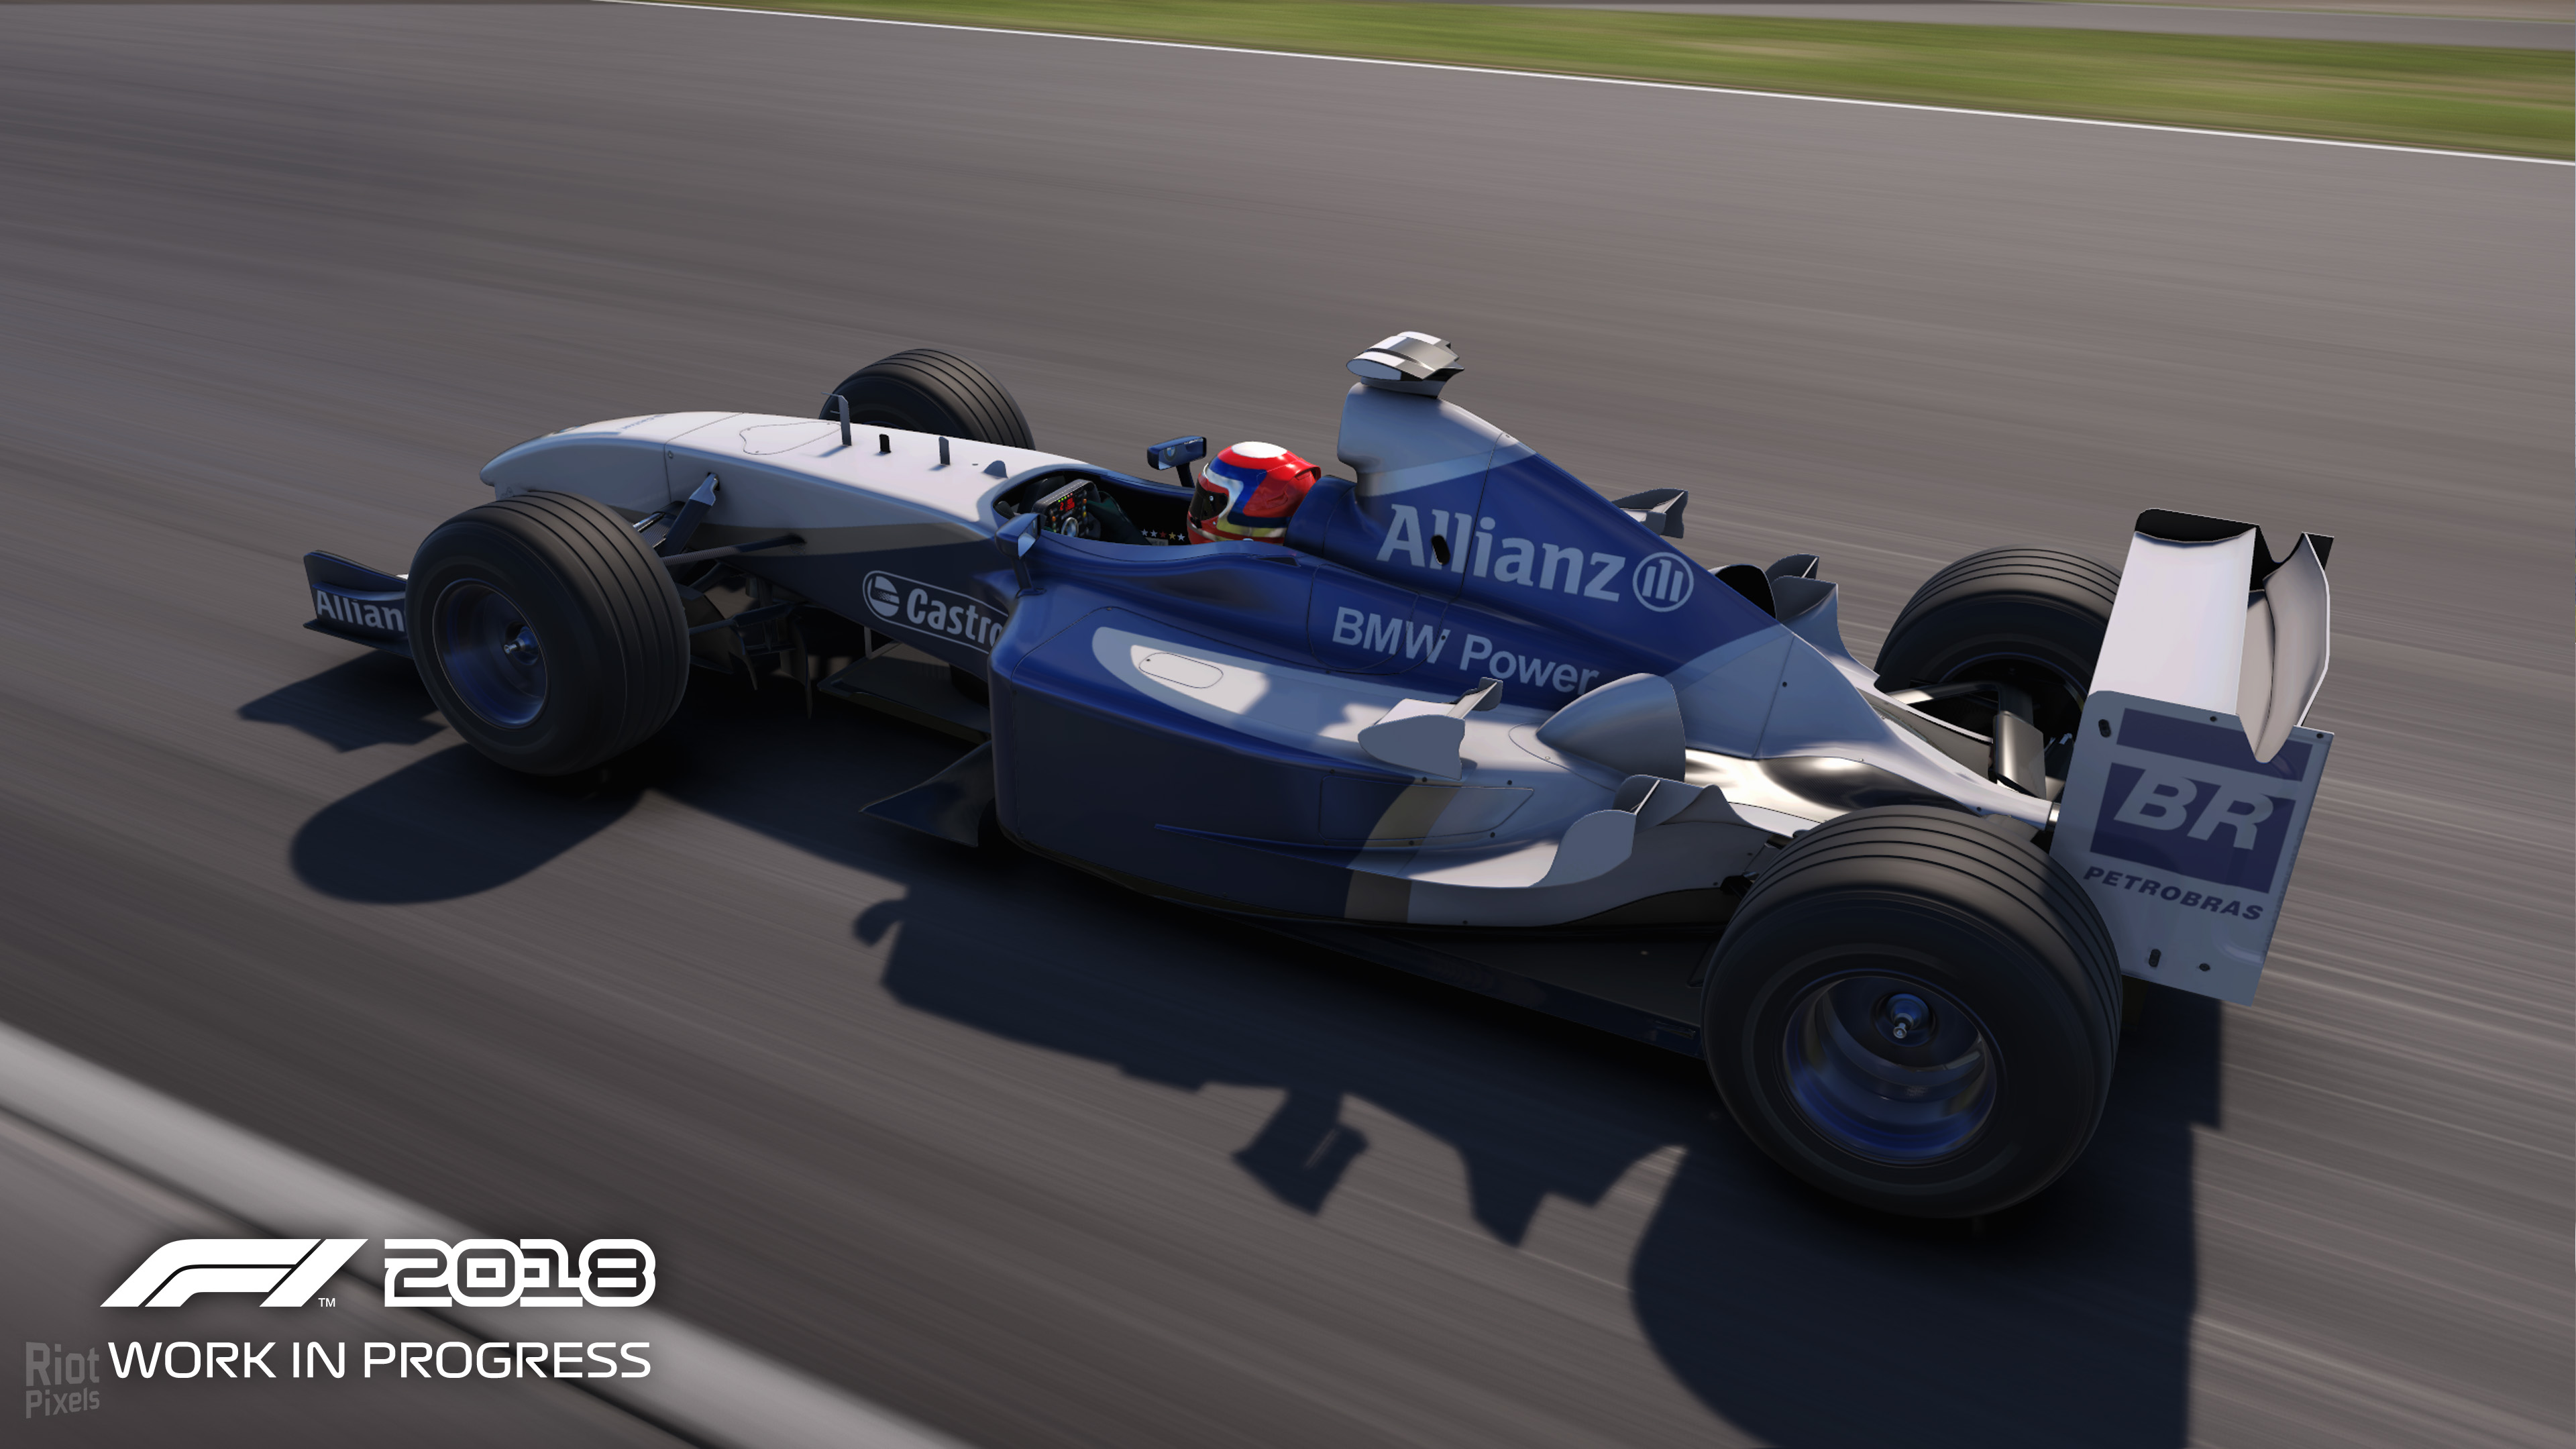 F1 2018 - game screenshots at Riot Pixels, images